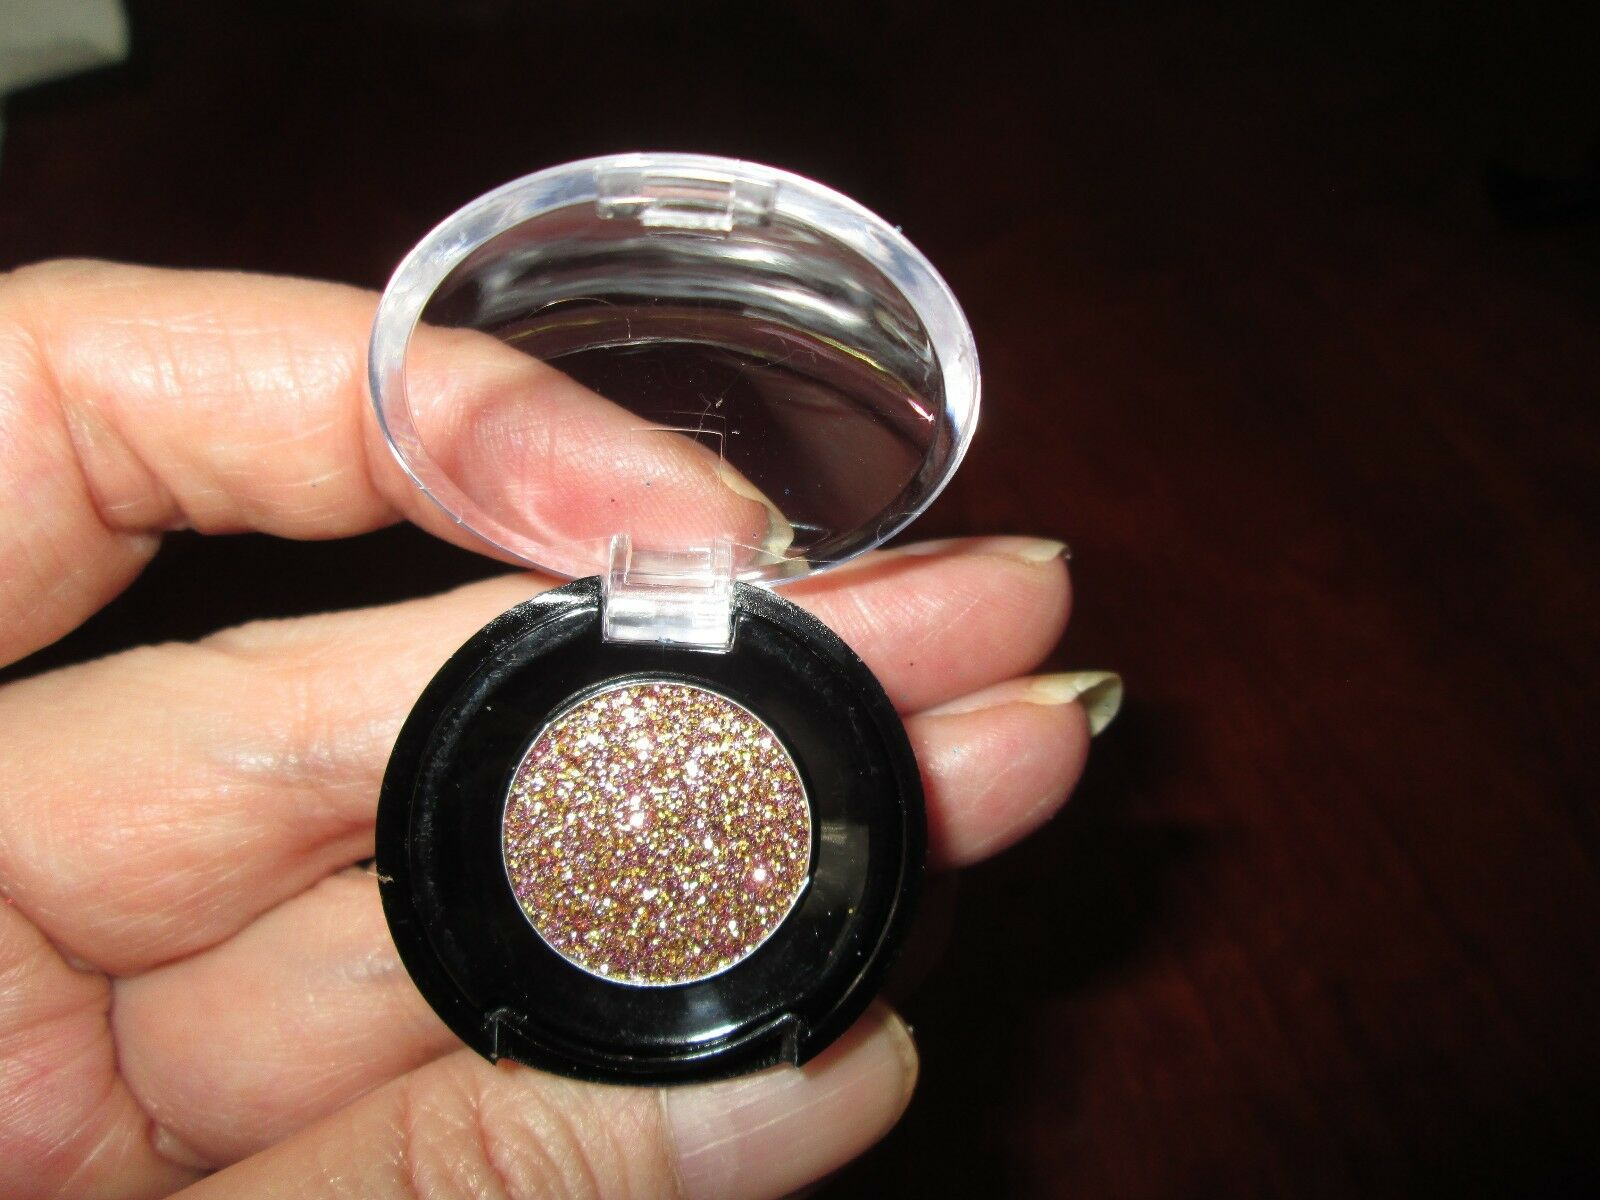 Glitter Eye Shadow Rose Gold Hand Pressed 300 Picclick Focallure And Glow Liquid Eyeshadow 1 Of 2 See More